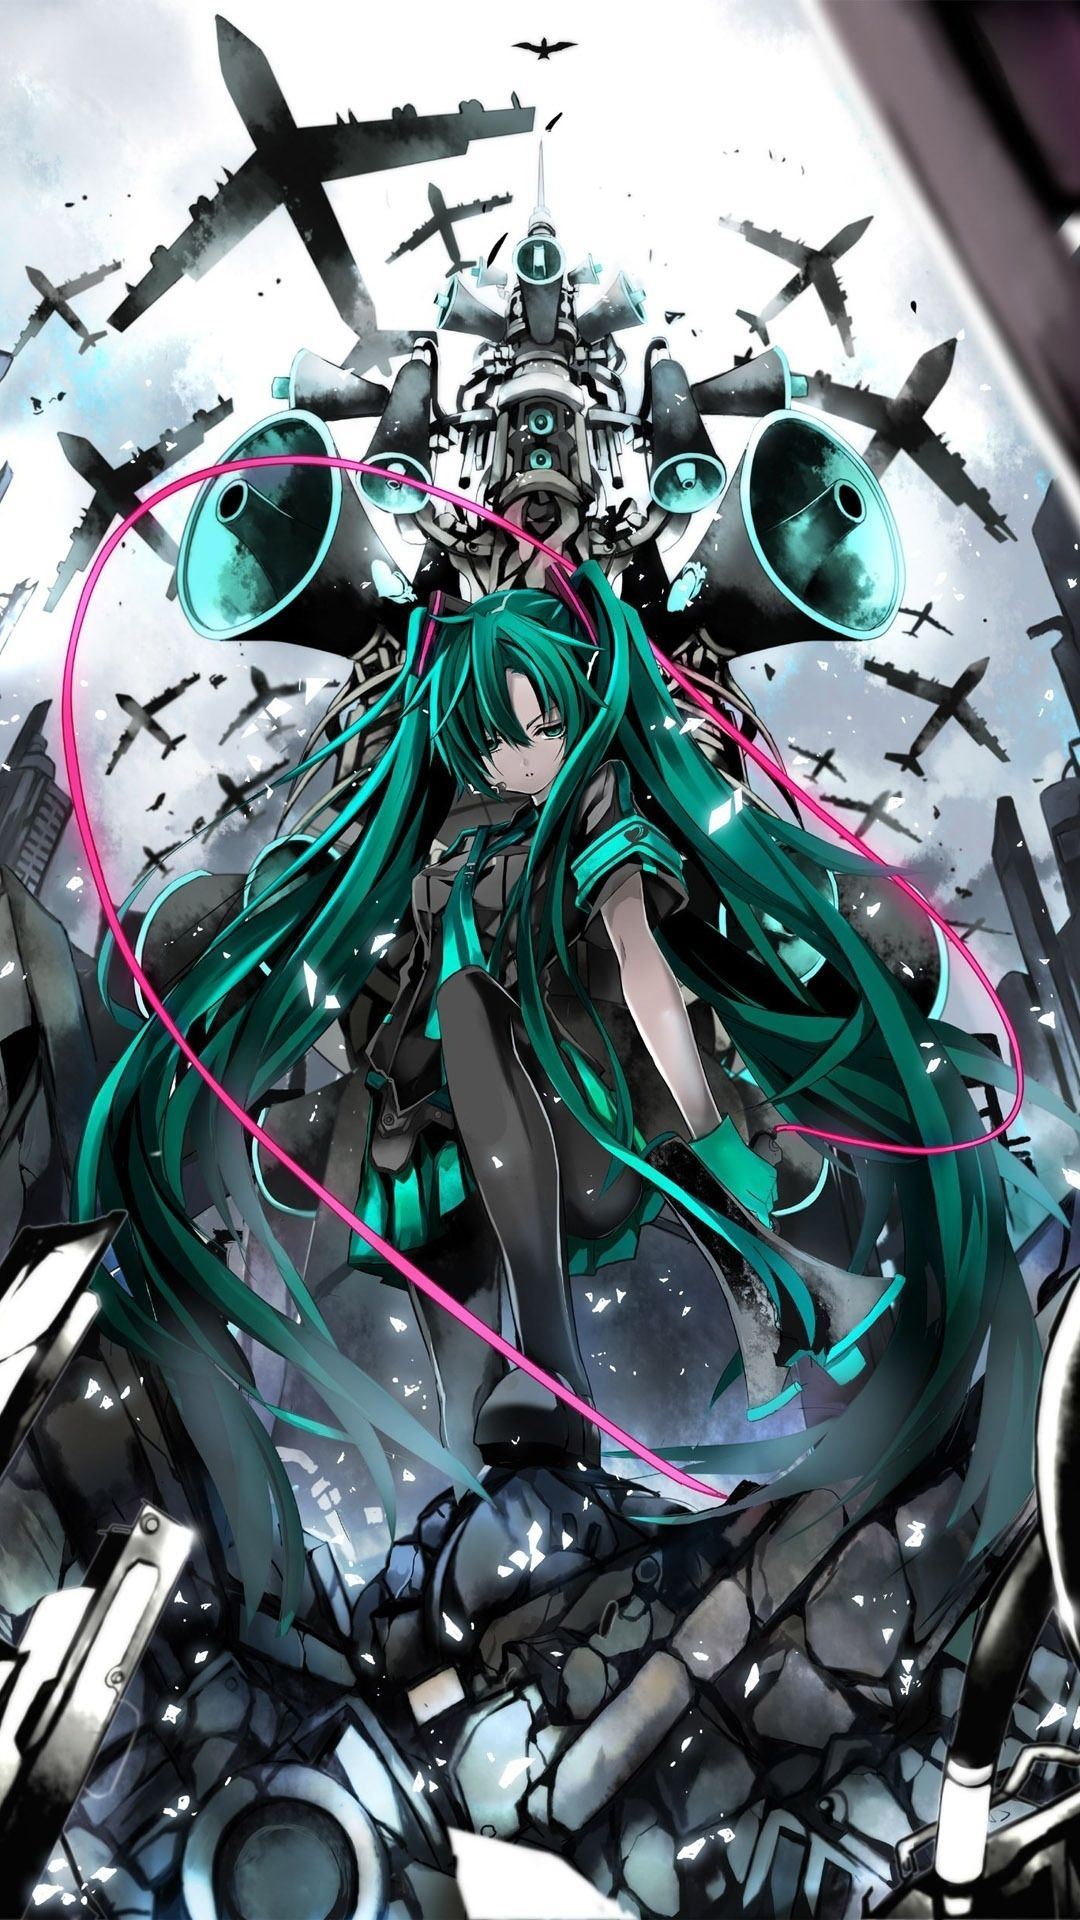 anime wallpaper phone miku pinterest anime wallpaper phone voltagebd Image collections